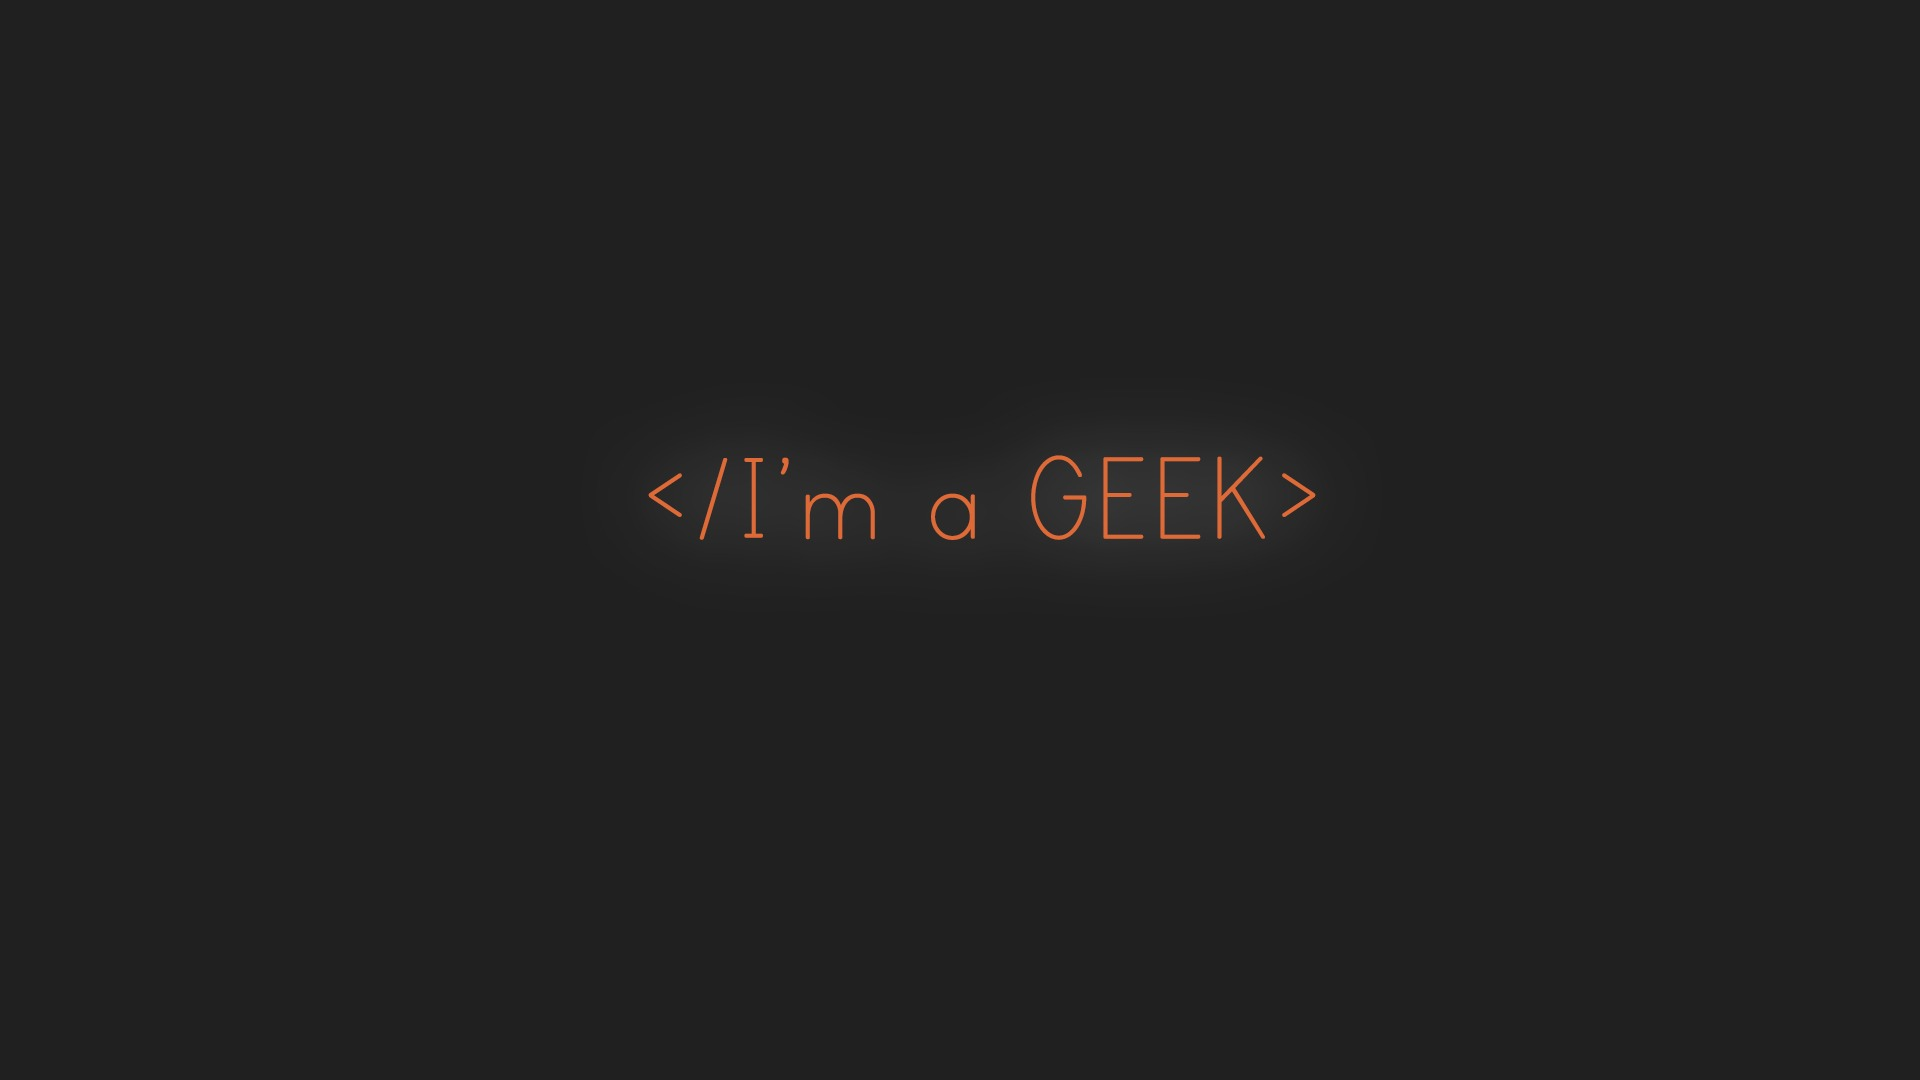 Wallpapers With Quotes And Sayings I Am Geek Computer Wallpapers Desktop Backgrounds